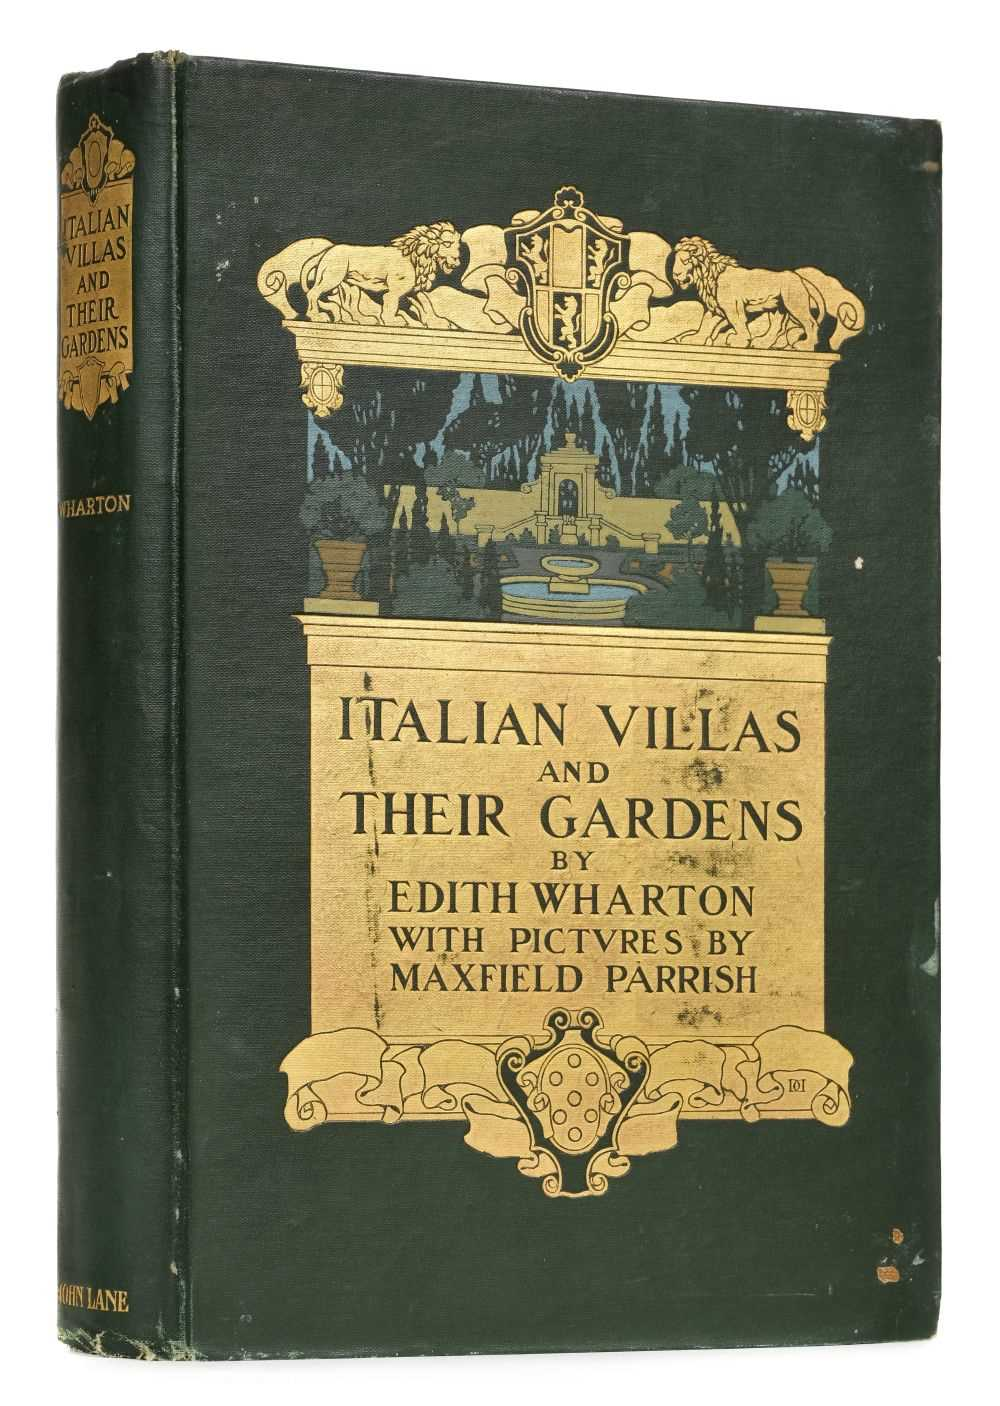 Lot 756-Wharton (Edith). Italian Villas and their Gardens, 1st UK edition, 1904